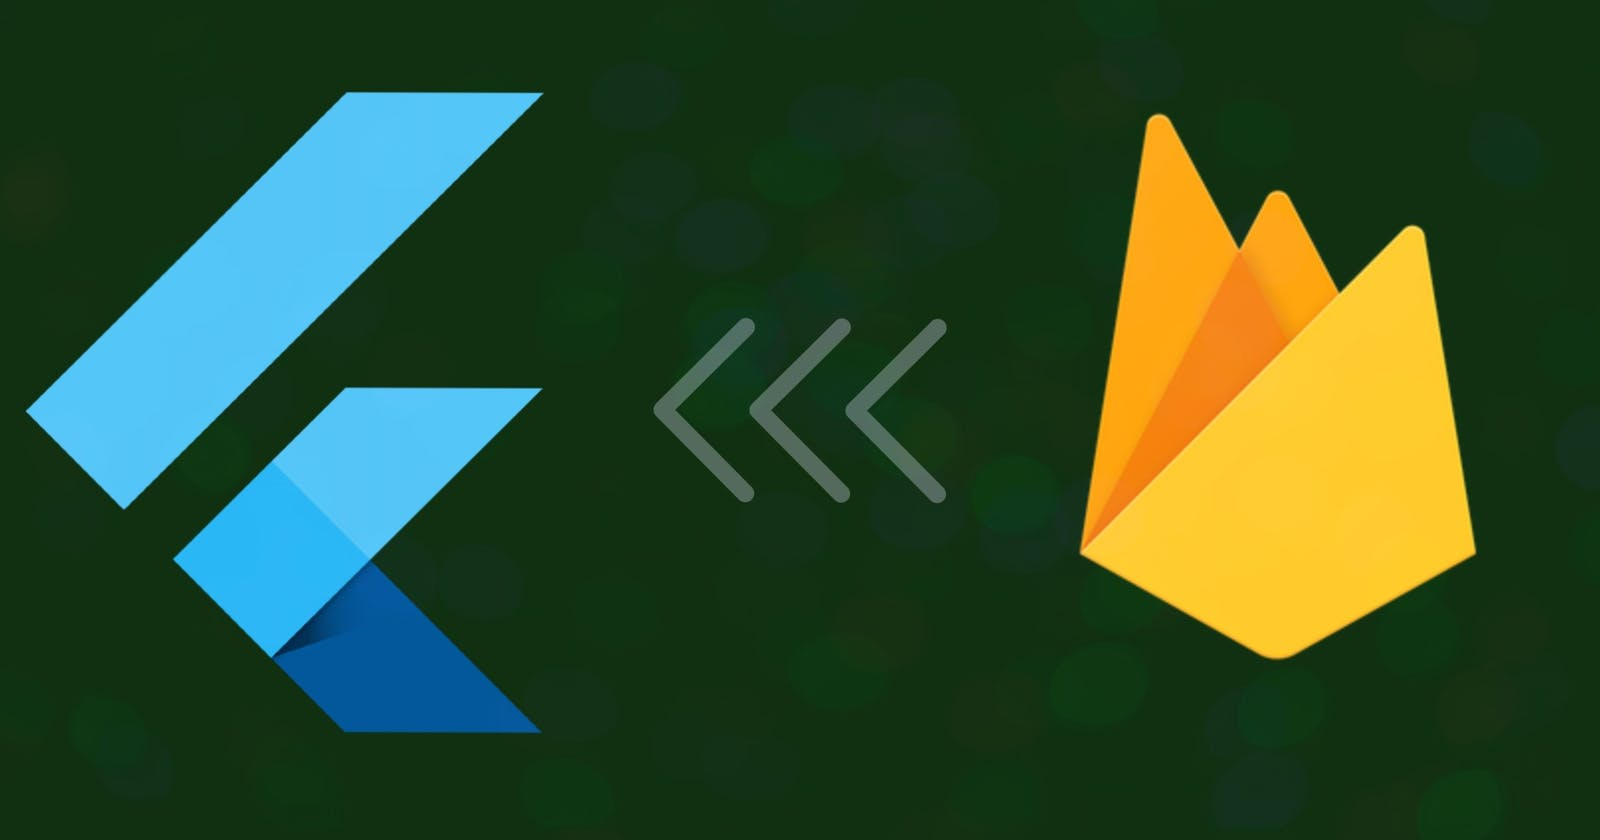 How to fix Android X error with firebase plugin in your flutter application